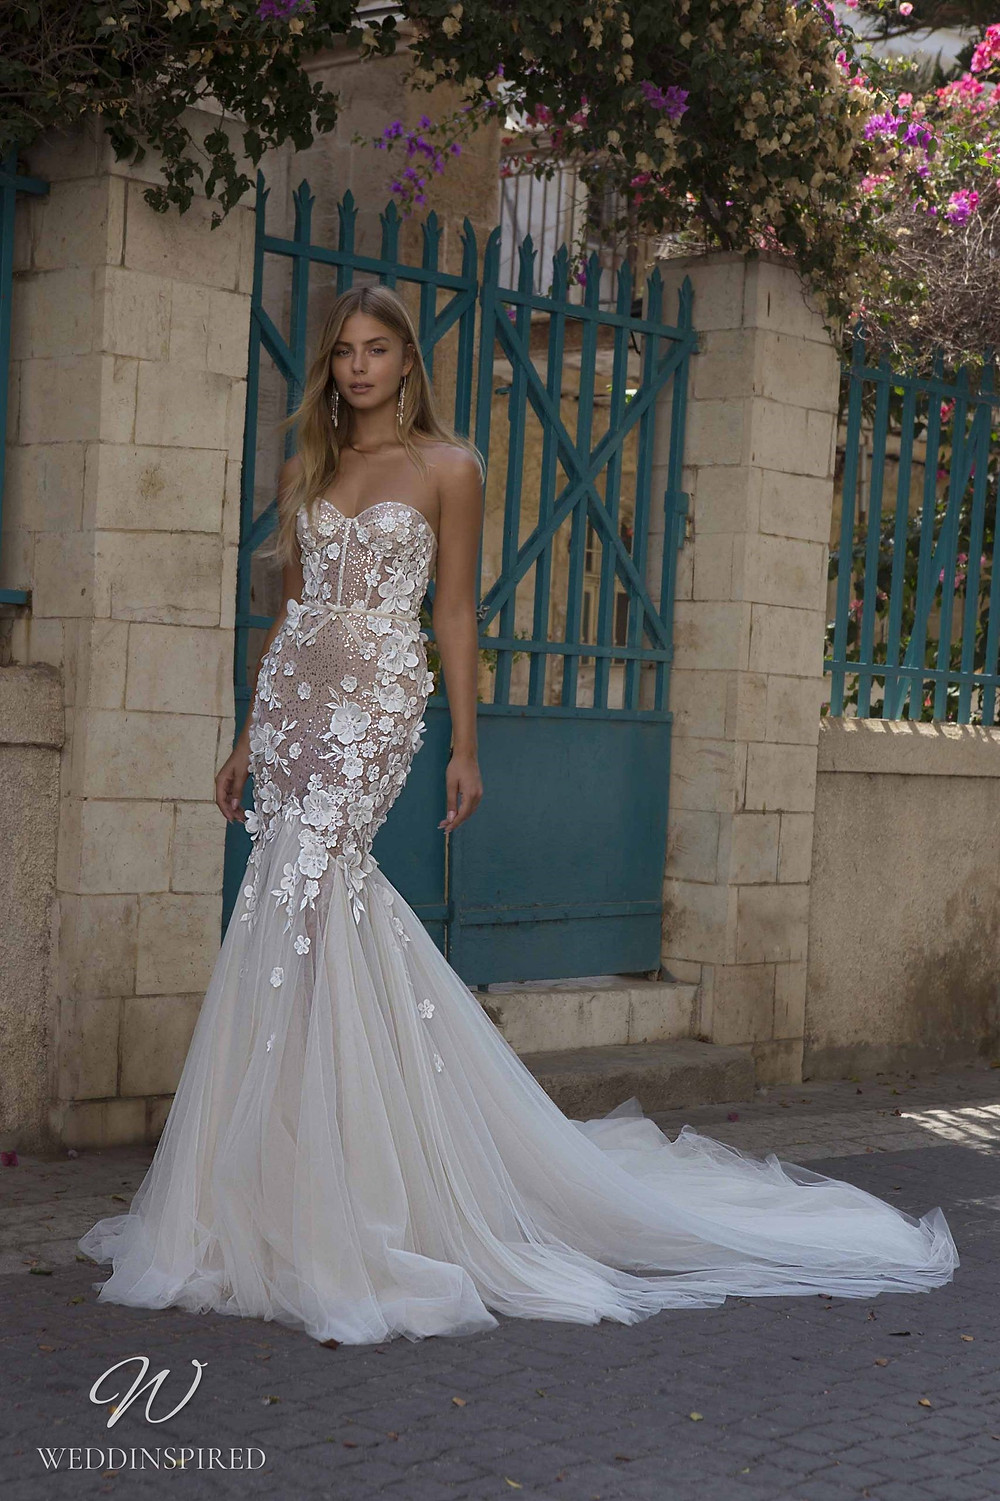 A Berta Priveé No 5 2021 nude strapless sparkly lace and tulle mermaid wedding dress